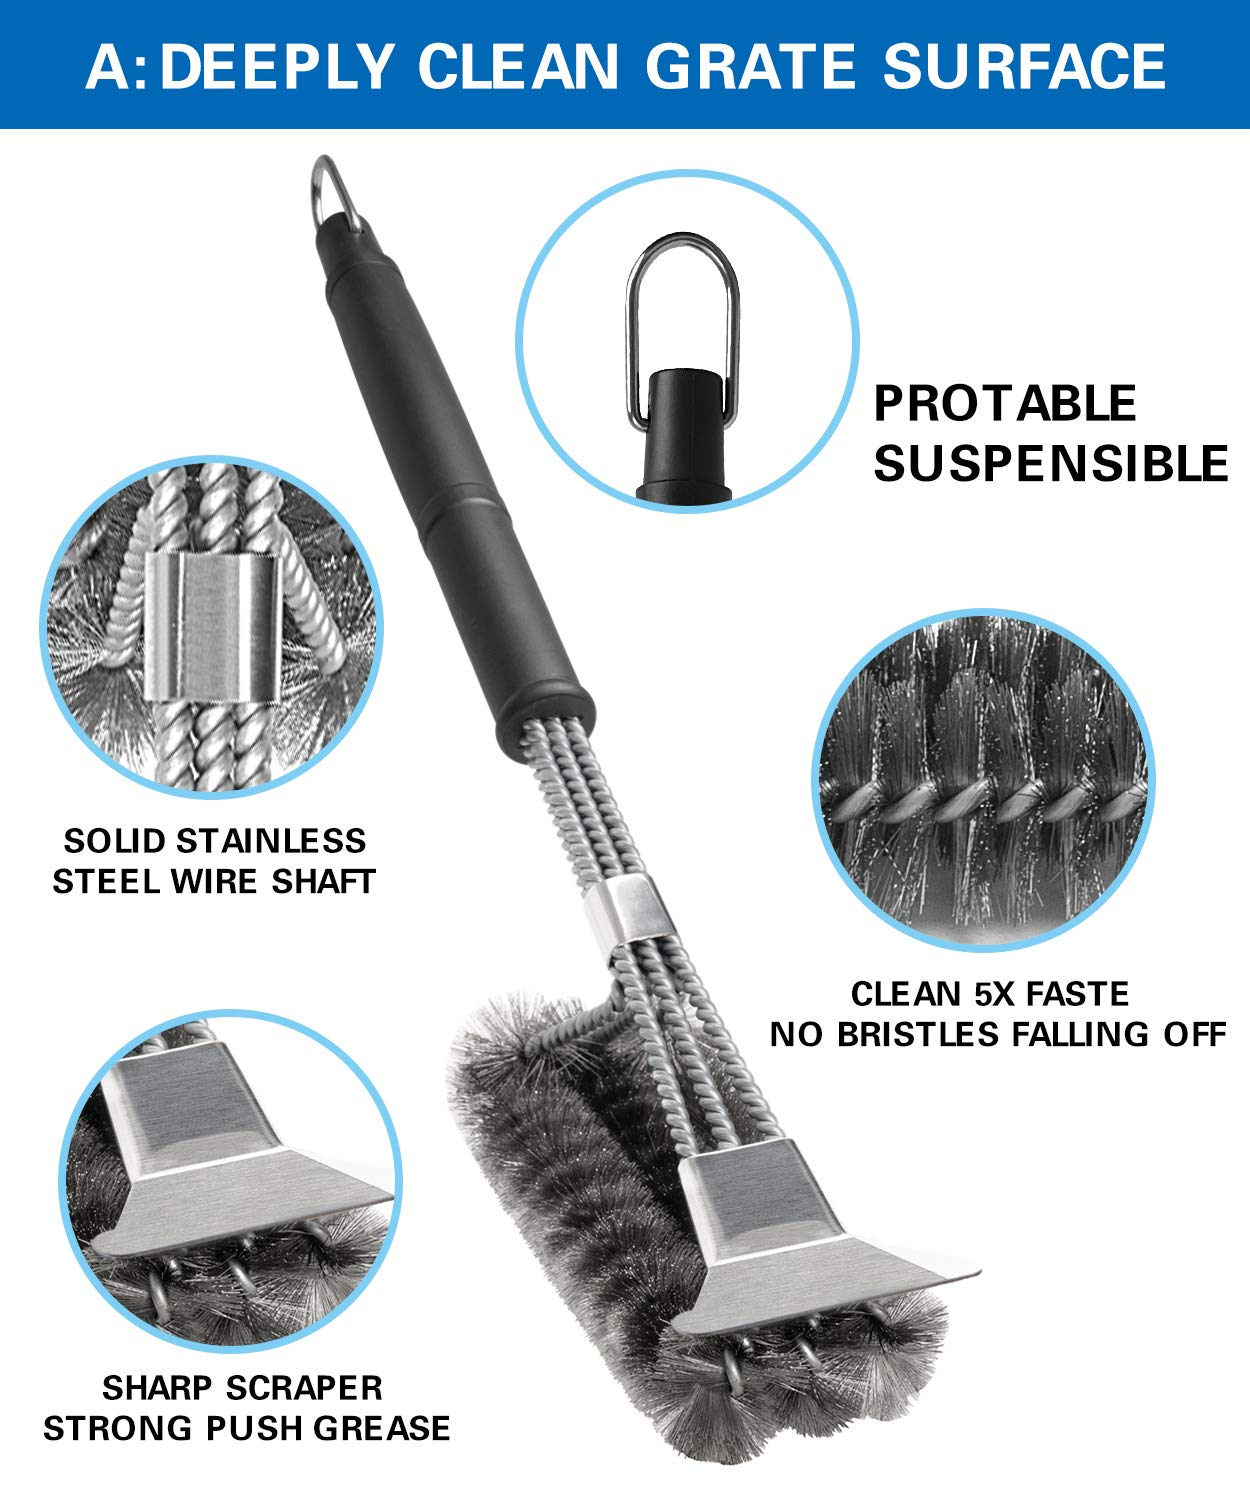 BBQ Grill Brush Set of 2, Safe Grill Cleaning Brush Stainless Steel Bristle Free with Scraper for Porcelain, Cast Iron, Stainless Steel, Ceramic Grill Grate Cooking Grid, 18'' Grill Tools Accessories by GASPRO (Image #4)